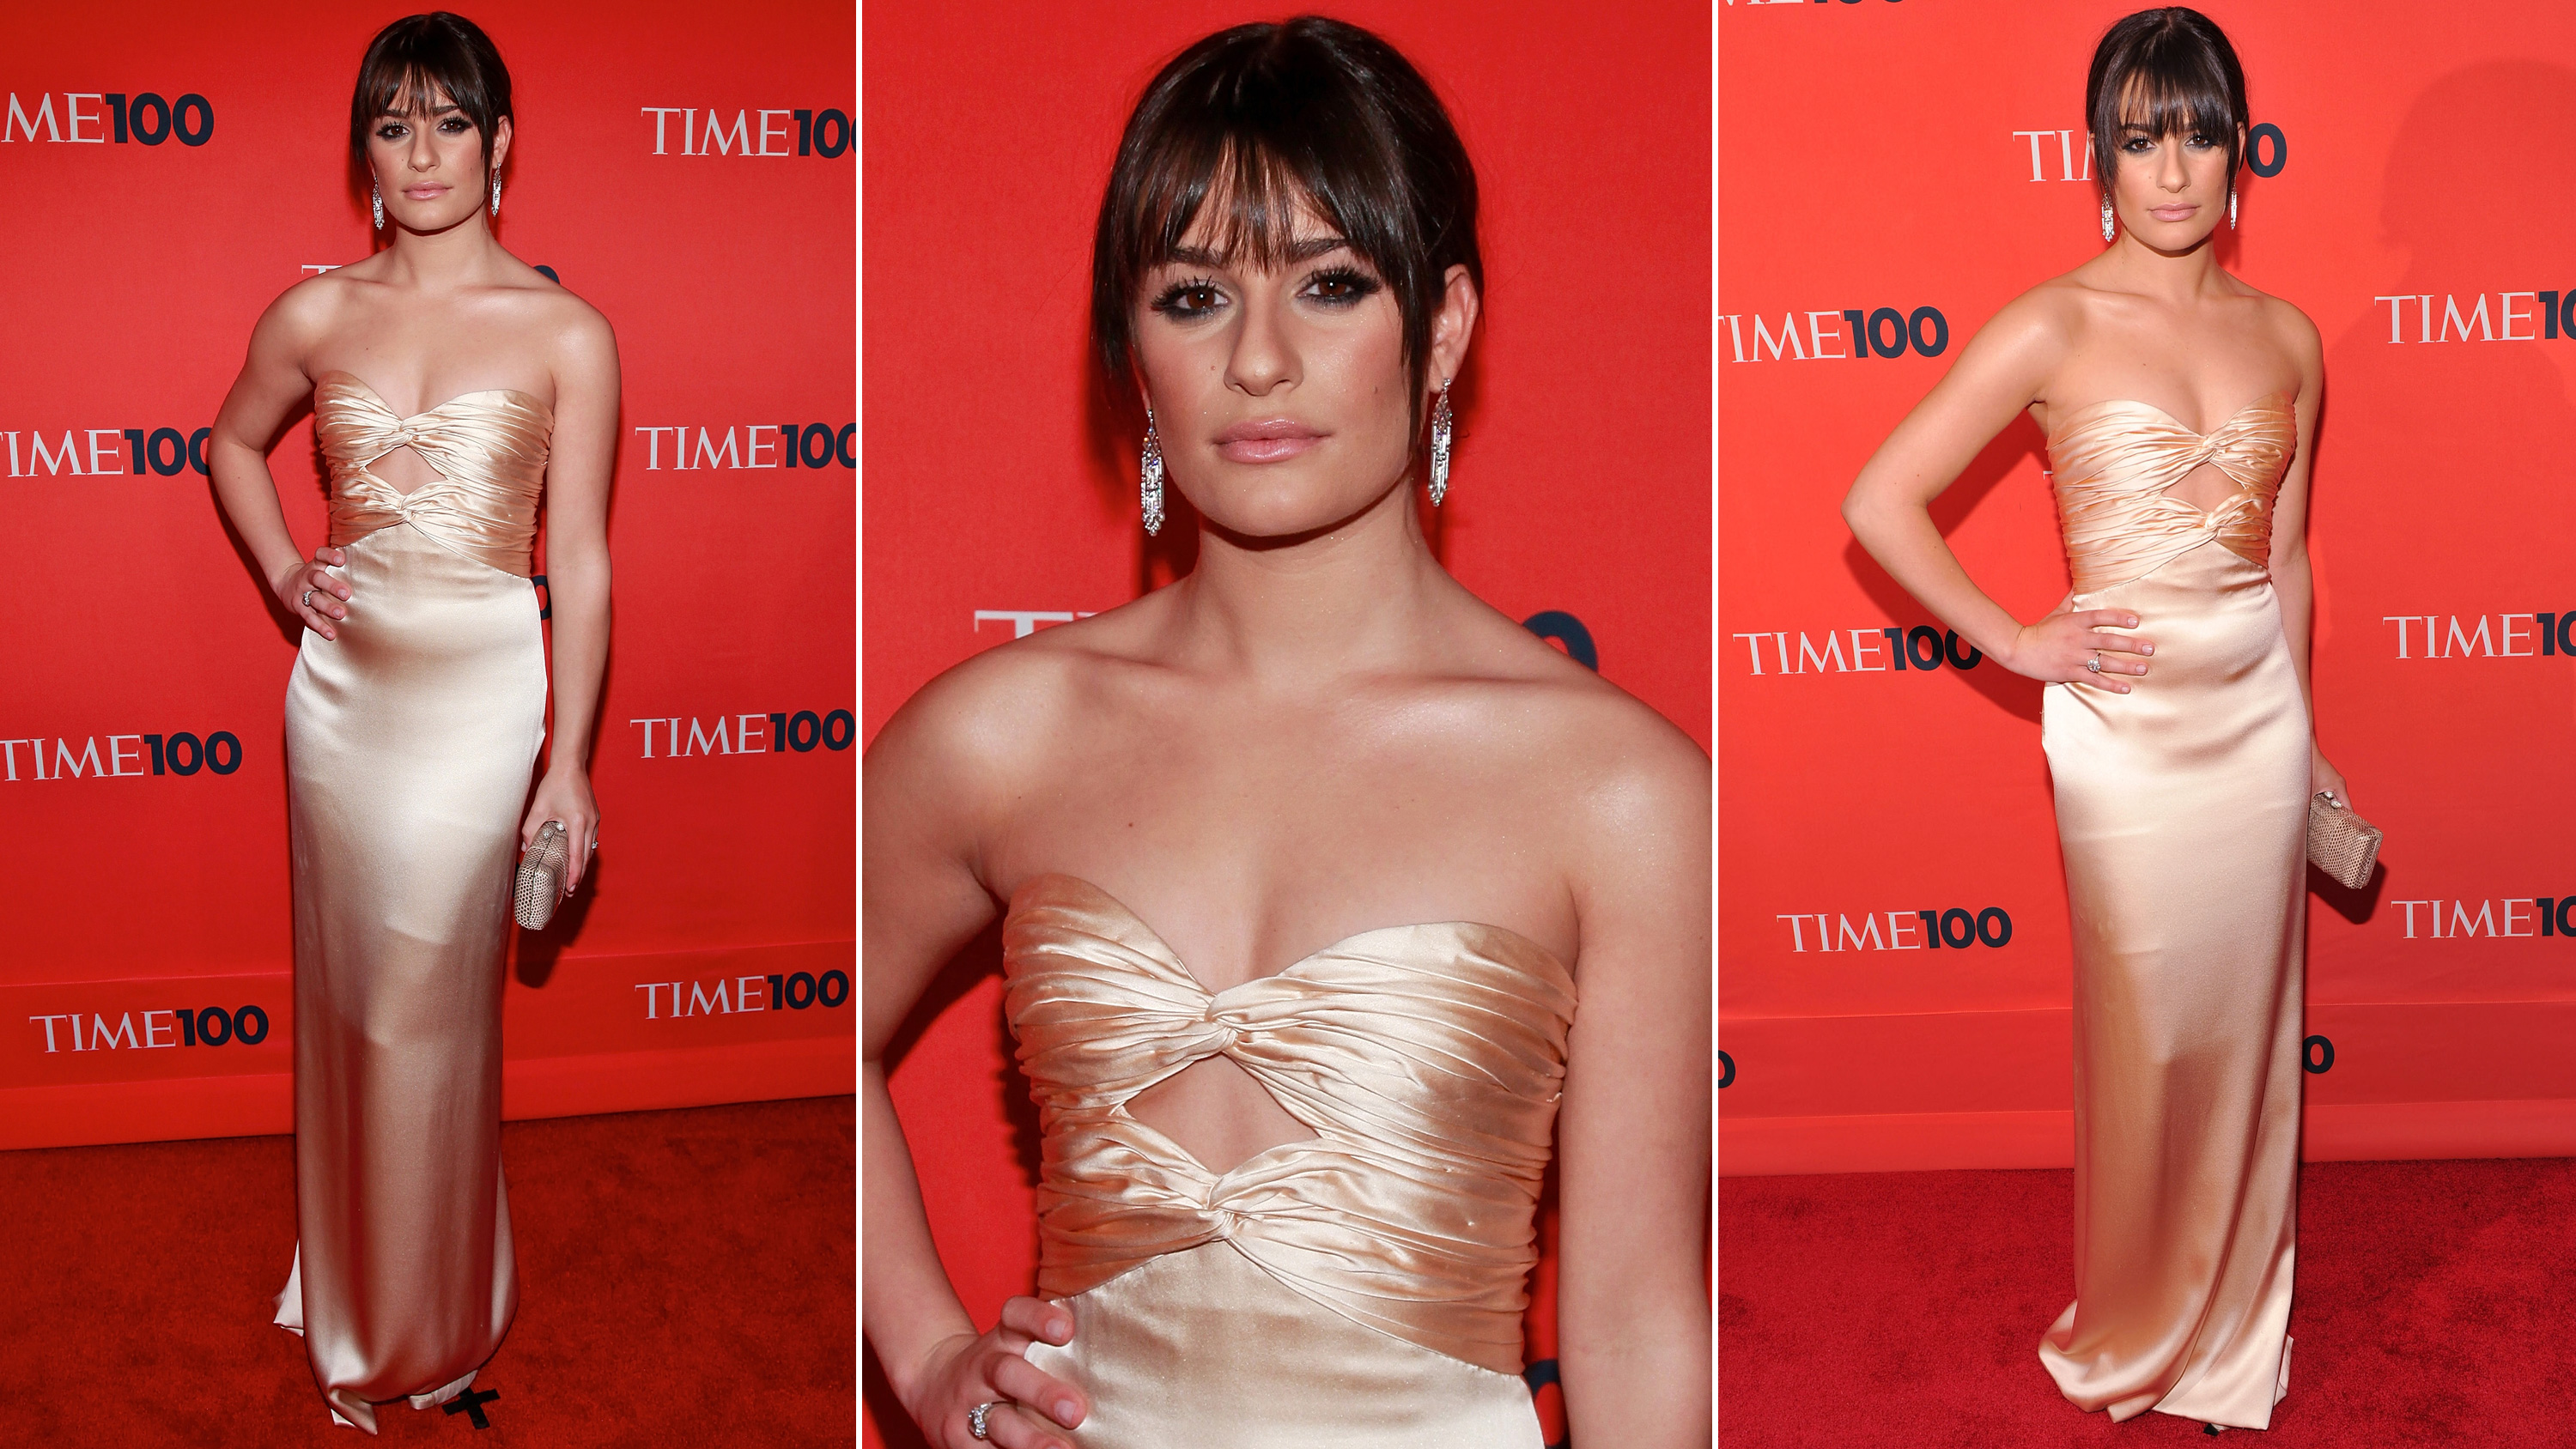 lea-michele-time-100-gown